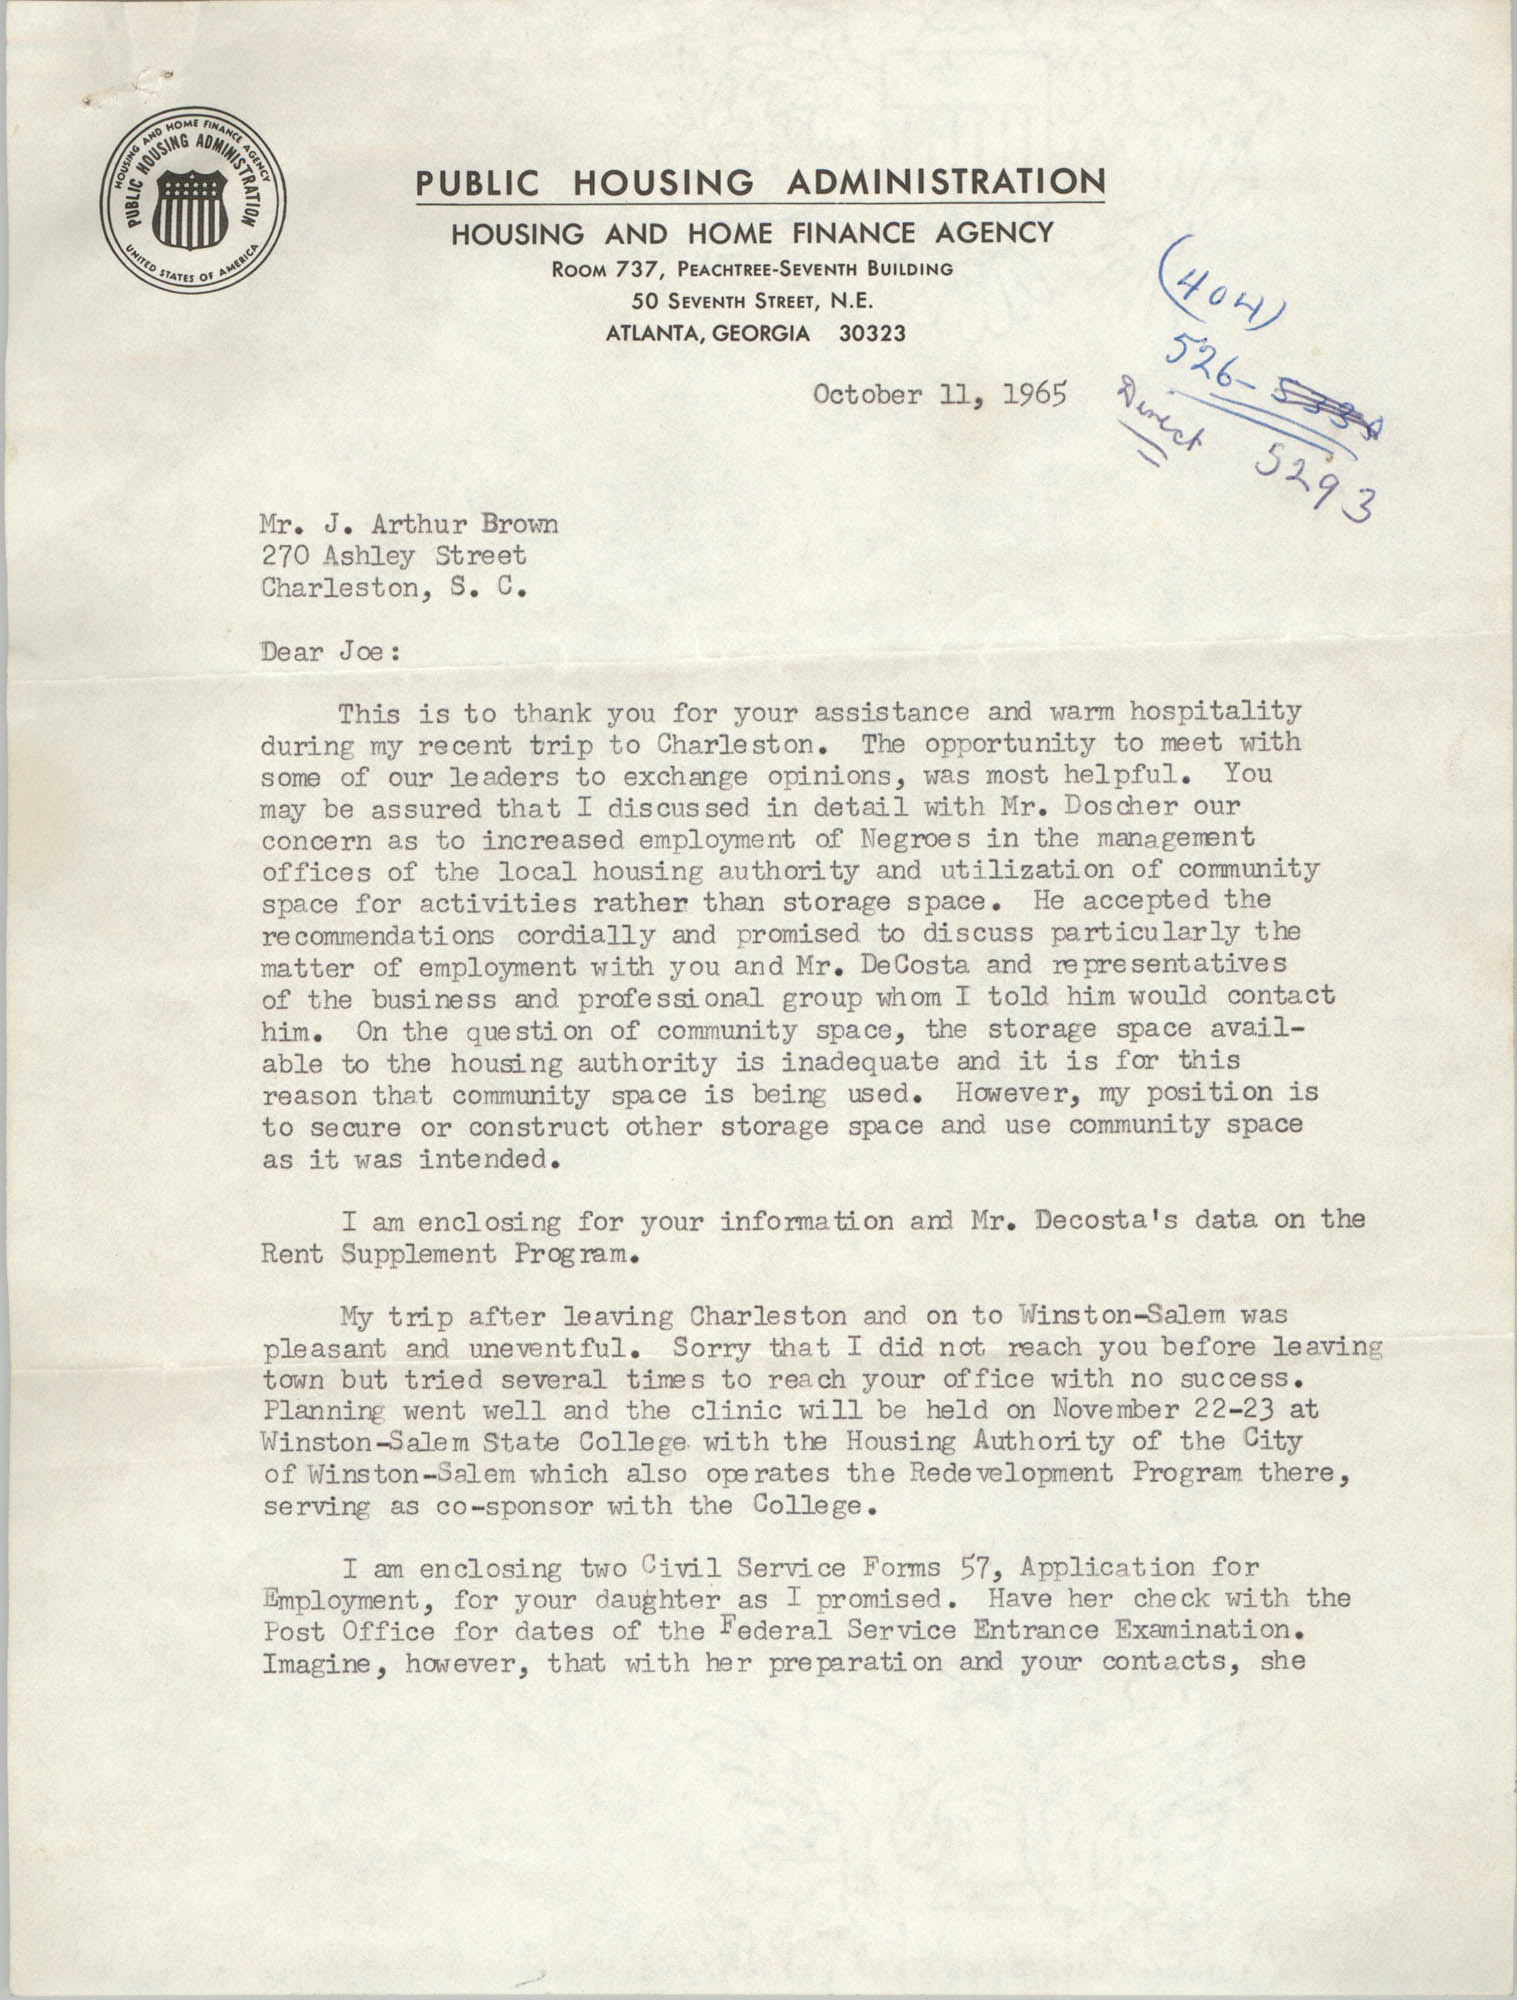 Letter from Hubert M. Jackson to J. Arthur Brown, October 11, 1965